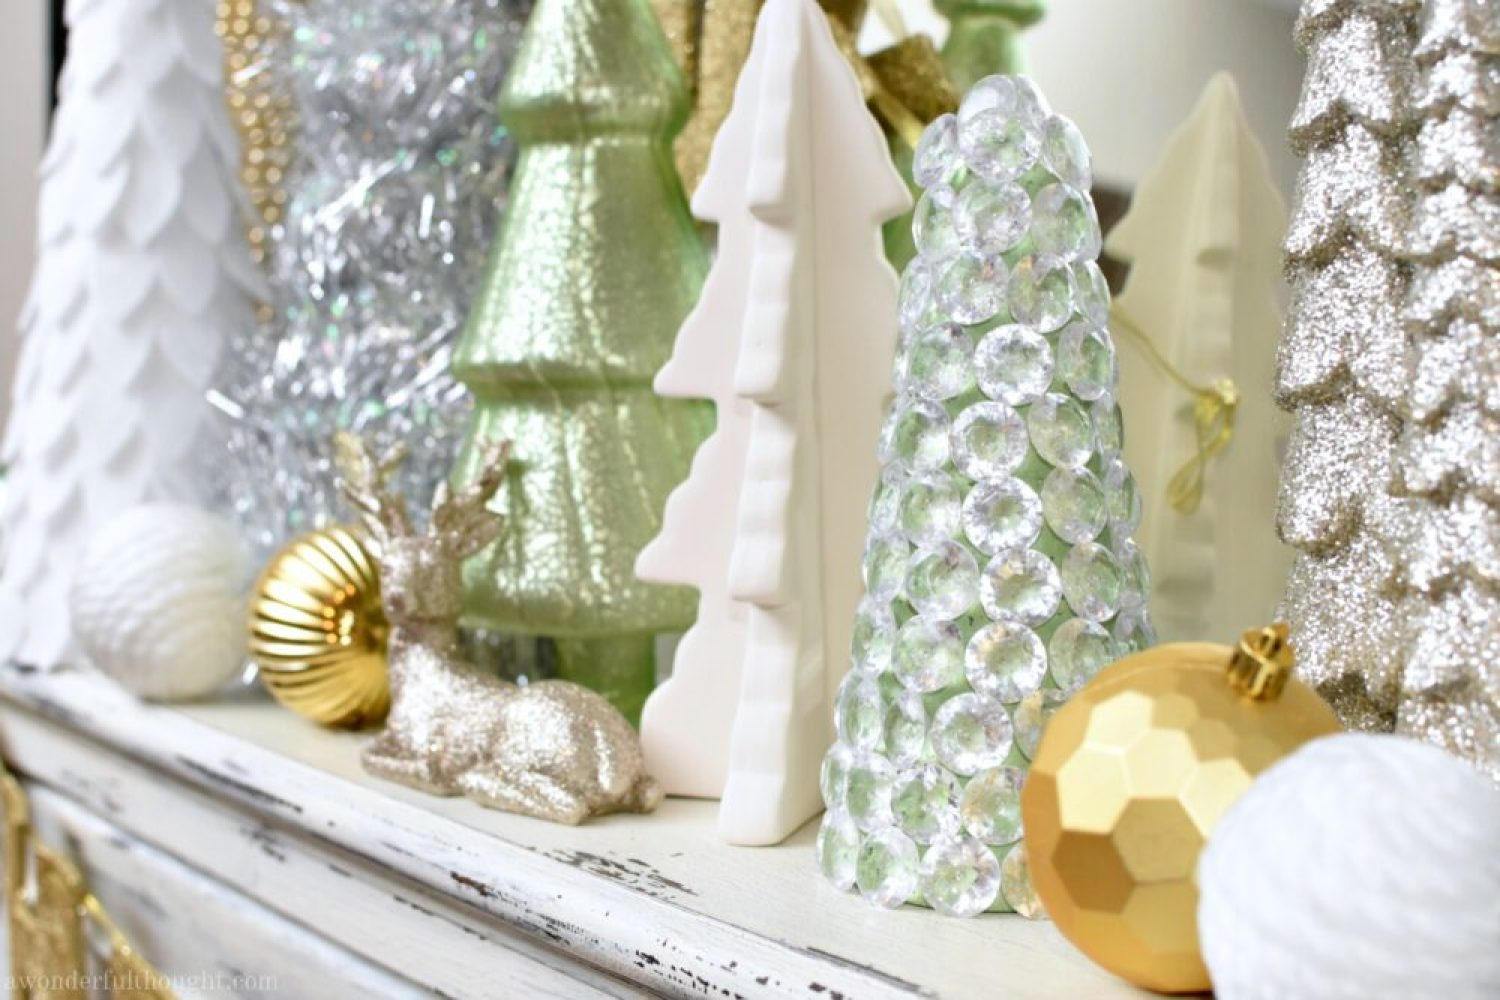 Dollar Store Craft | Sparkly Gem Christmas Tree - A Wonderful Thought